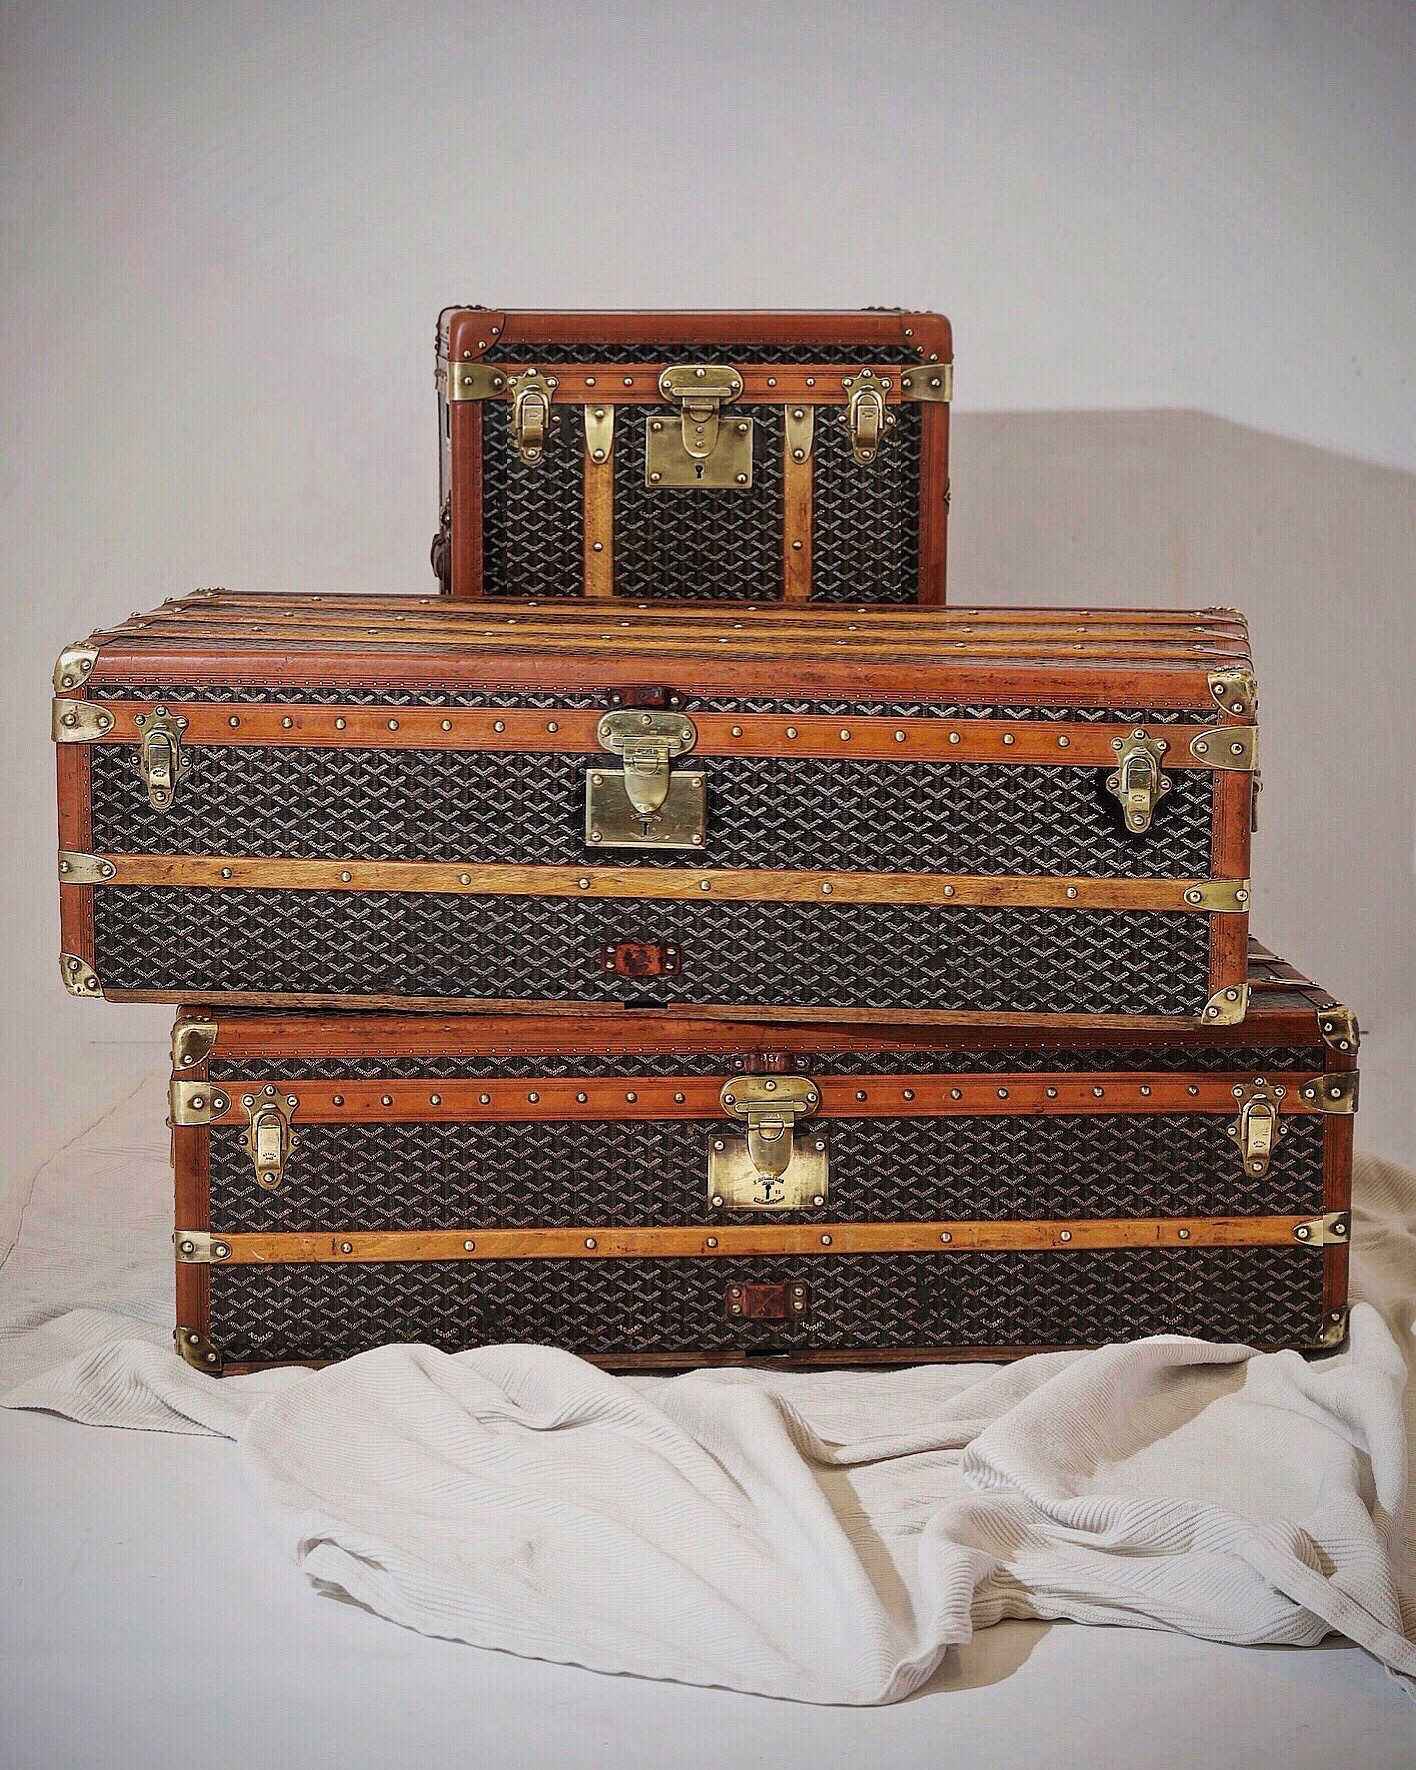 eled-trunk-goyard-thumbnail-product-5703-7